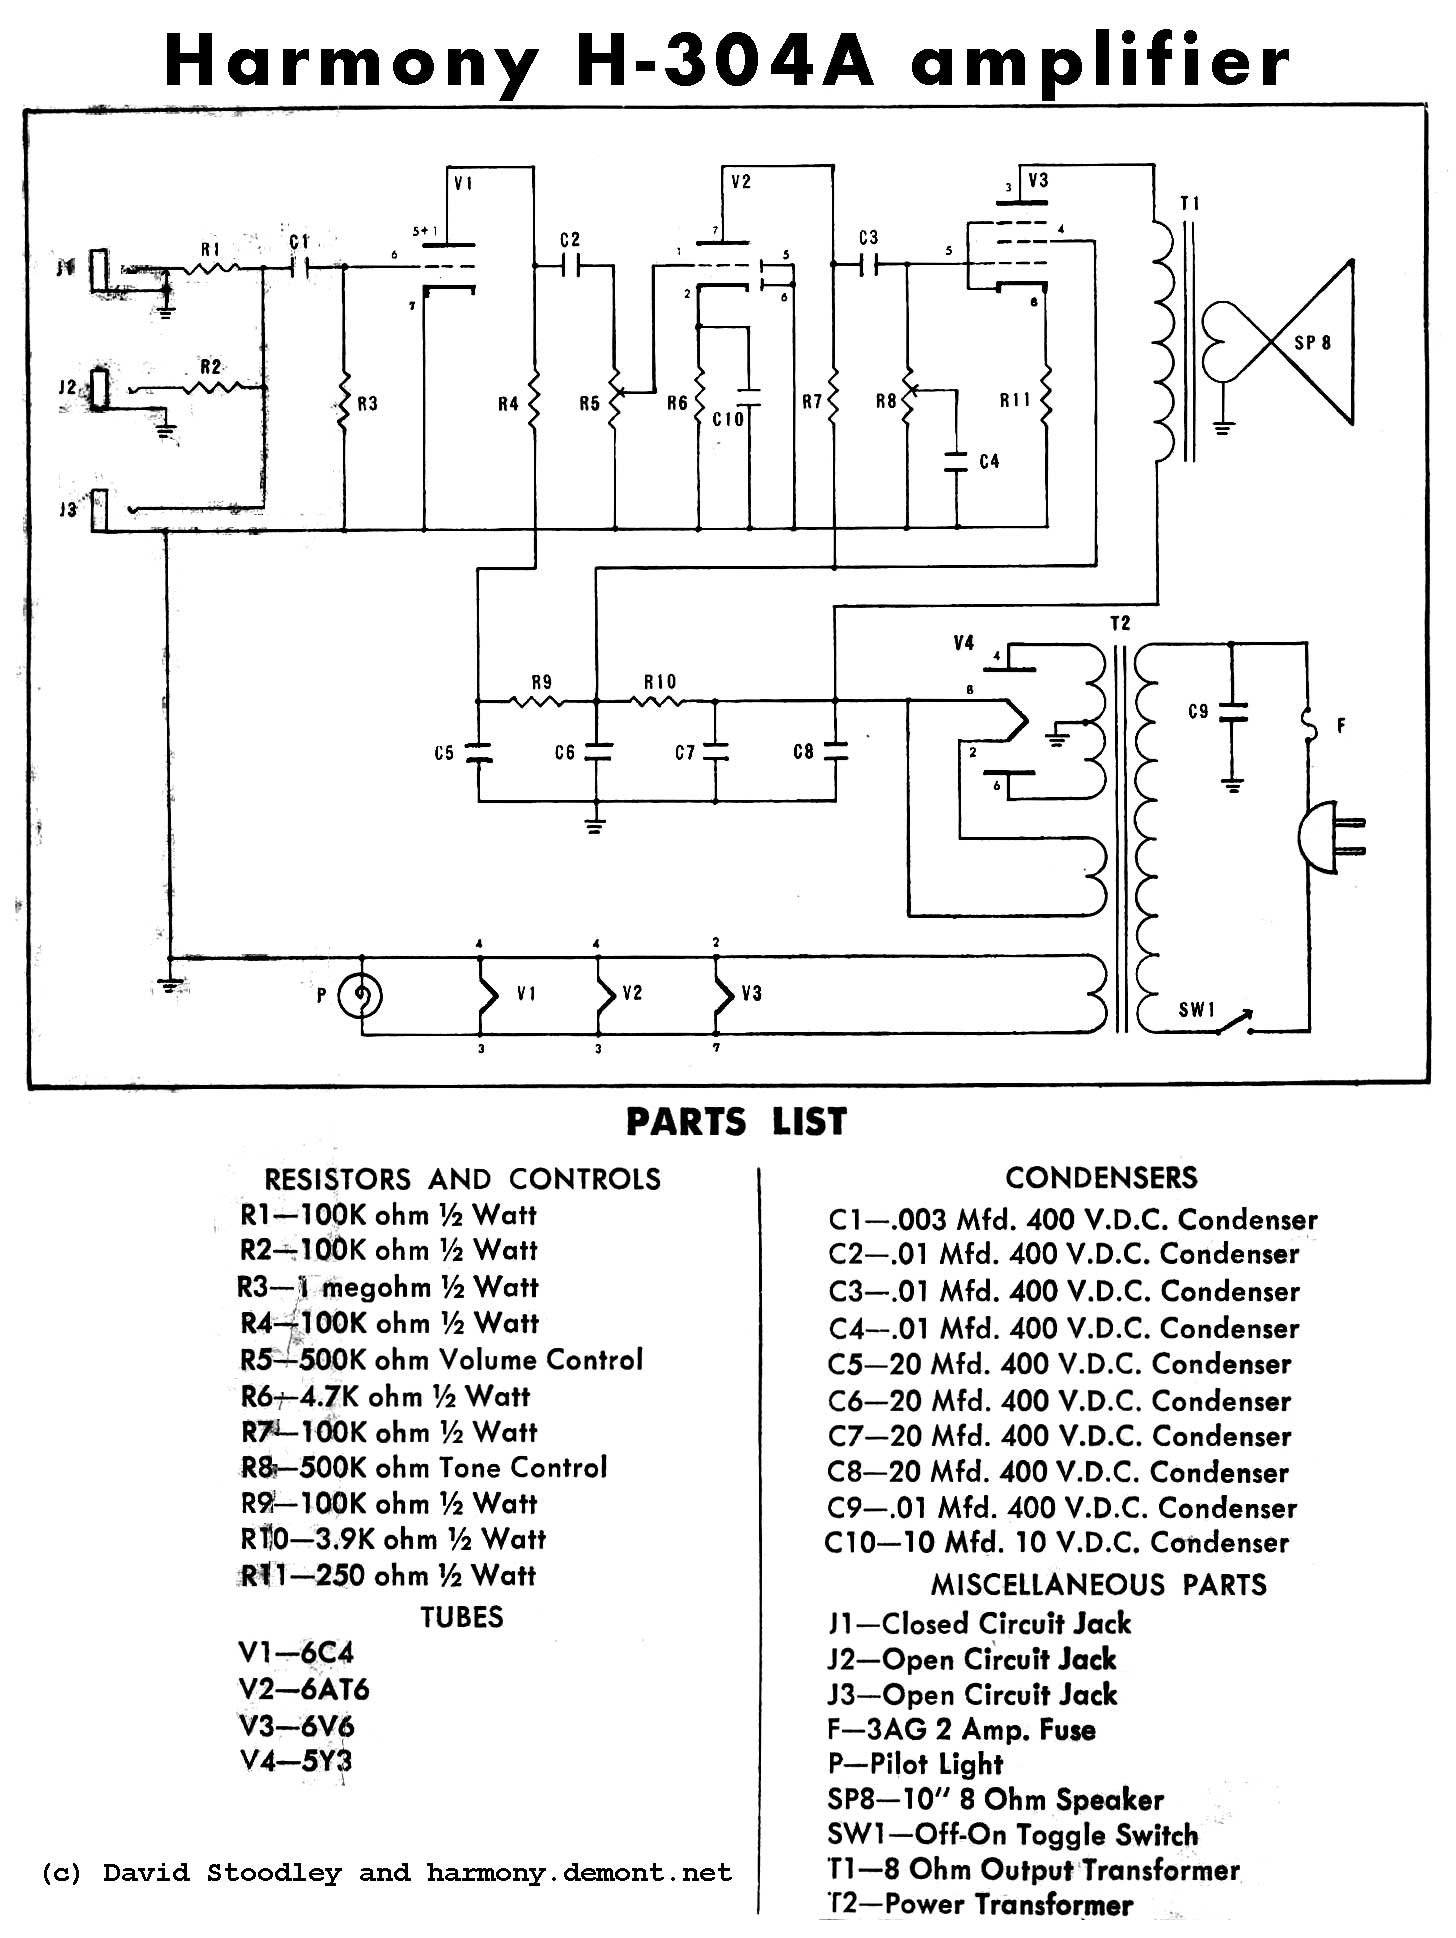 harmony guitars database Jbl Wiring Diagram h304 · h304a (jpeg image, 243ko) thanks to dave Pressure Switch Wiring Diagram